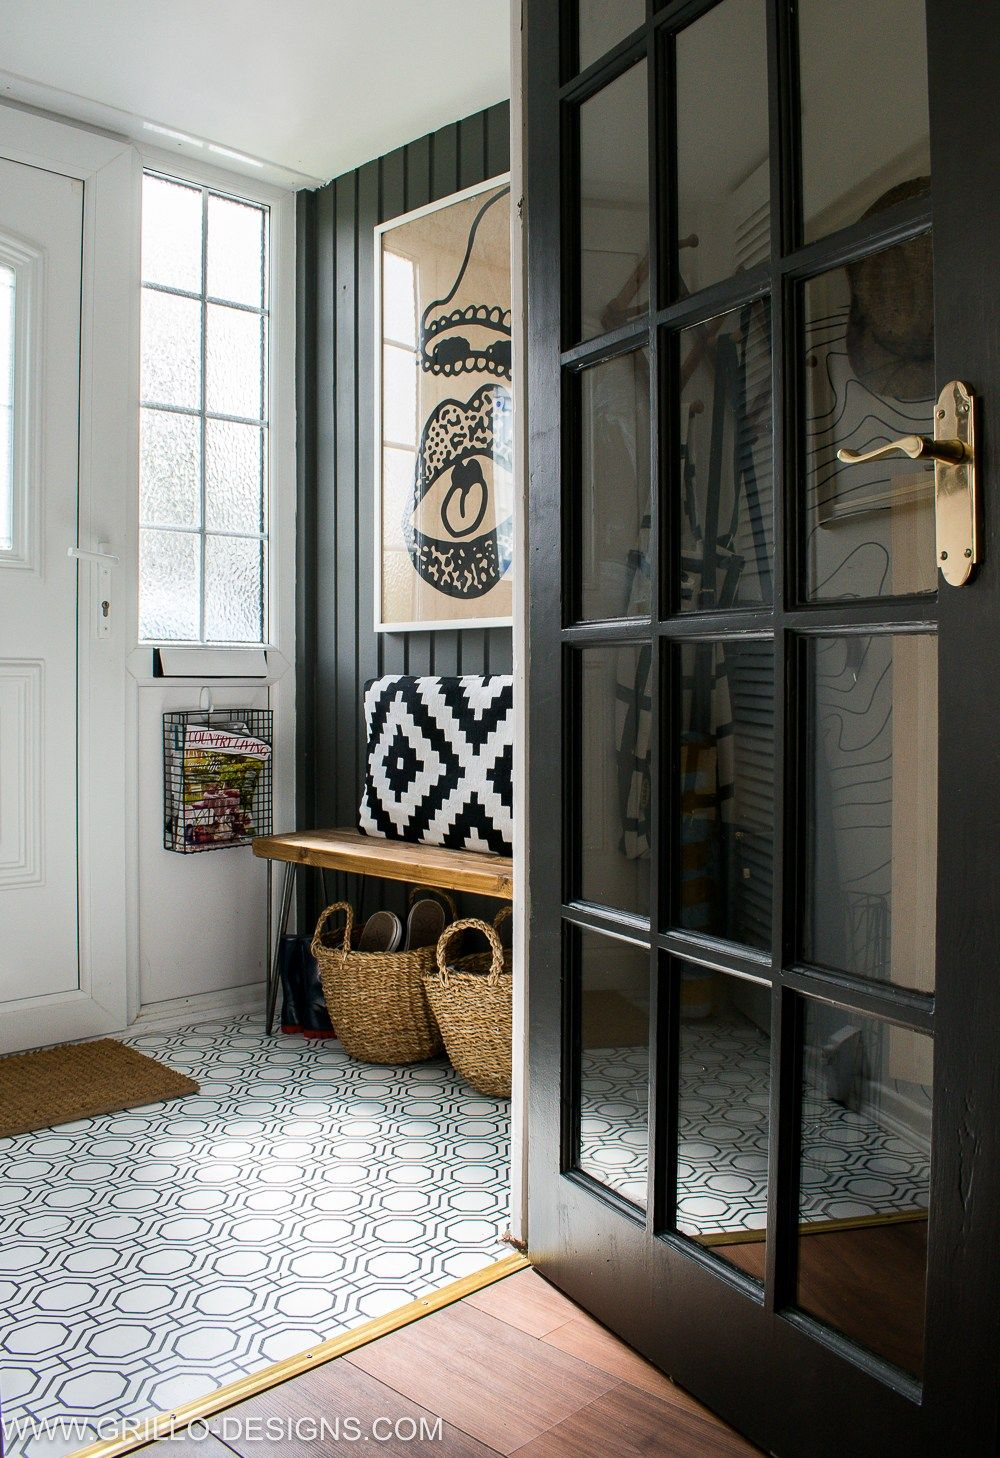 Big Style in a Small Space Rental: Organizing Tips for a chic eclectic space featuring functional and gorgeous design. #smallspaceliving #bohochic